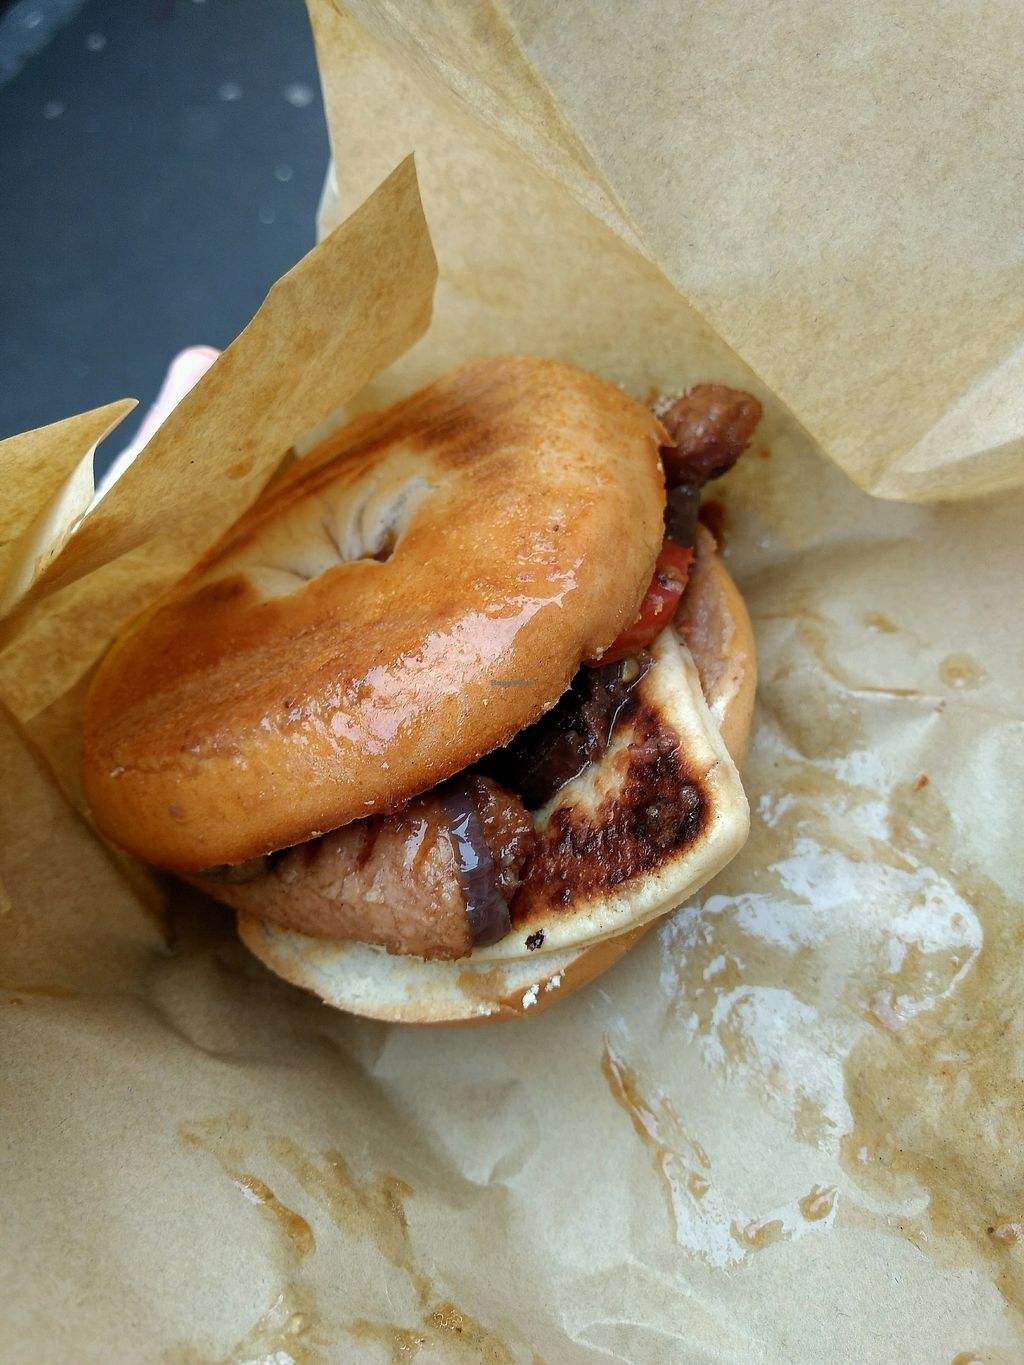 """Photo of CLOSED: Kind Crusts  by <a href=""""/members/profile/craigmc"""">craigmc</a> <br/>breakfast bagel <br/> November 15, 2017  - <a href='/contact/abuse/image/75955/325900'>Report</a>"""